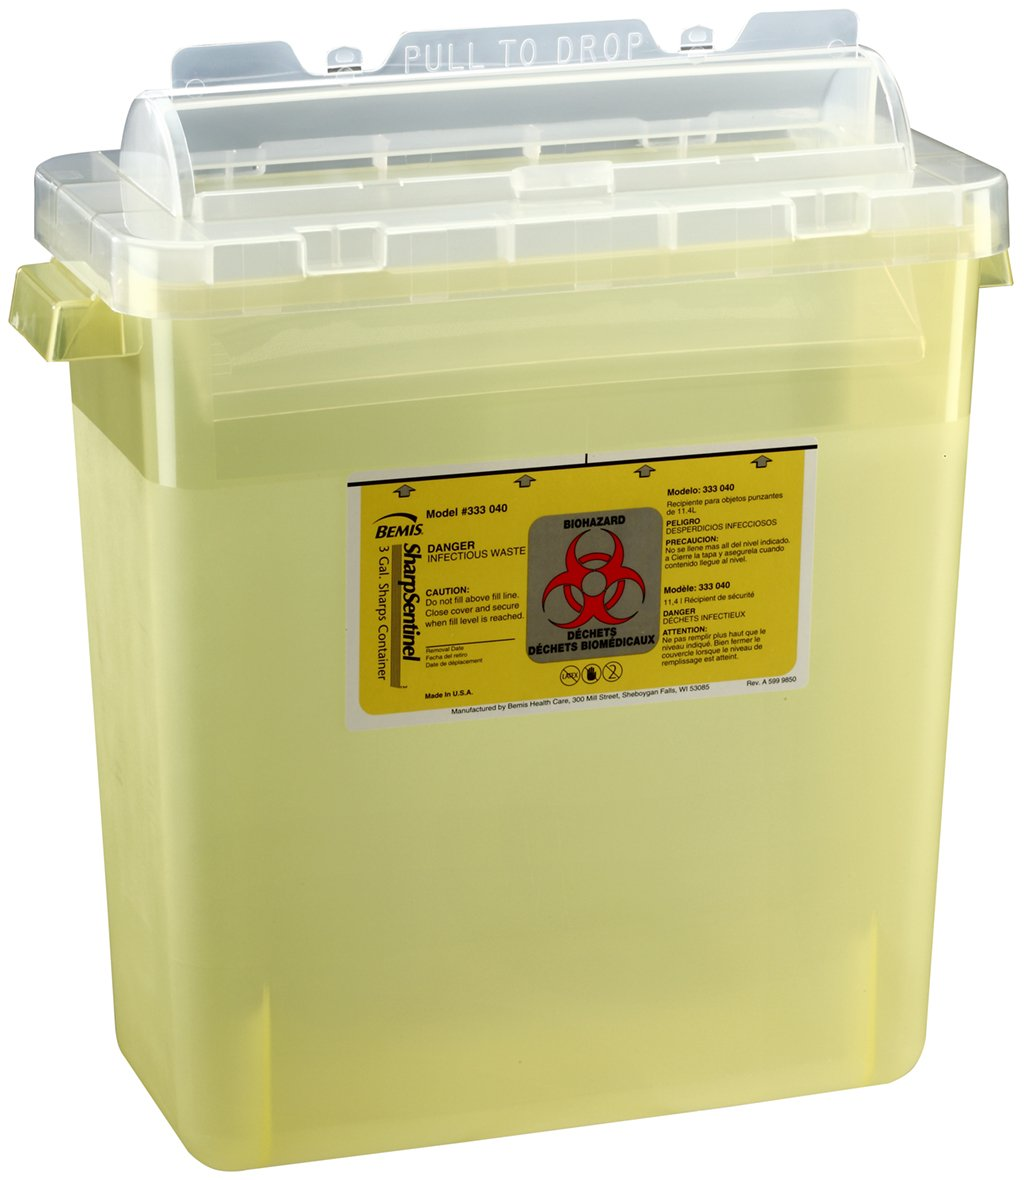 Bemis Healthcare 333040-12 3 gal Sharps Container, Translucent Yellow (Pack of 12)